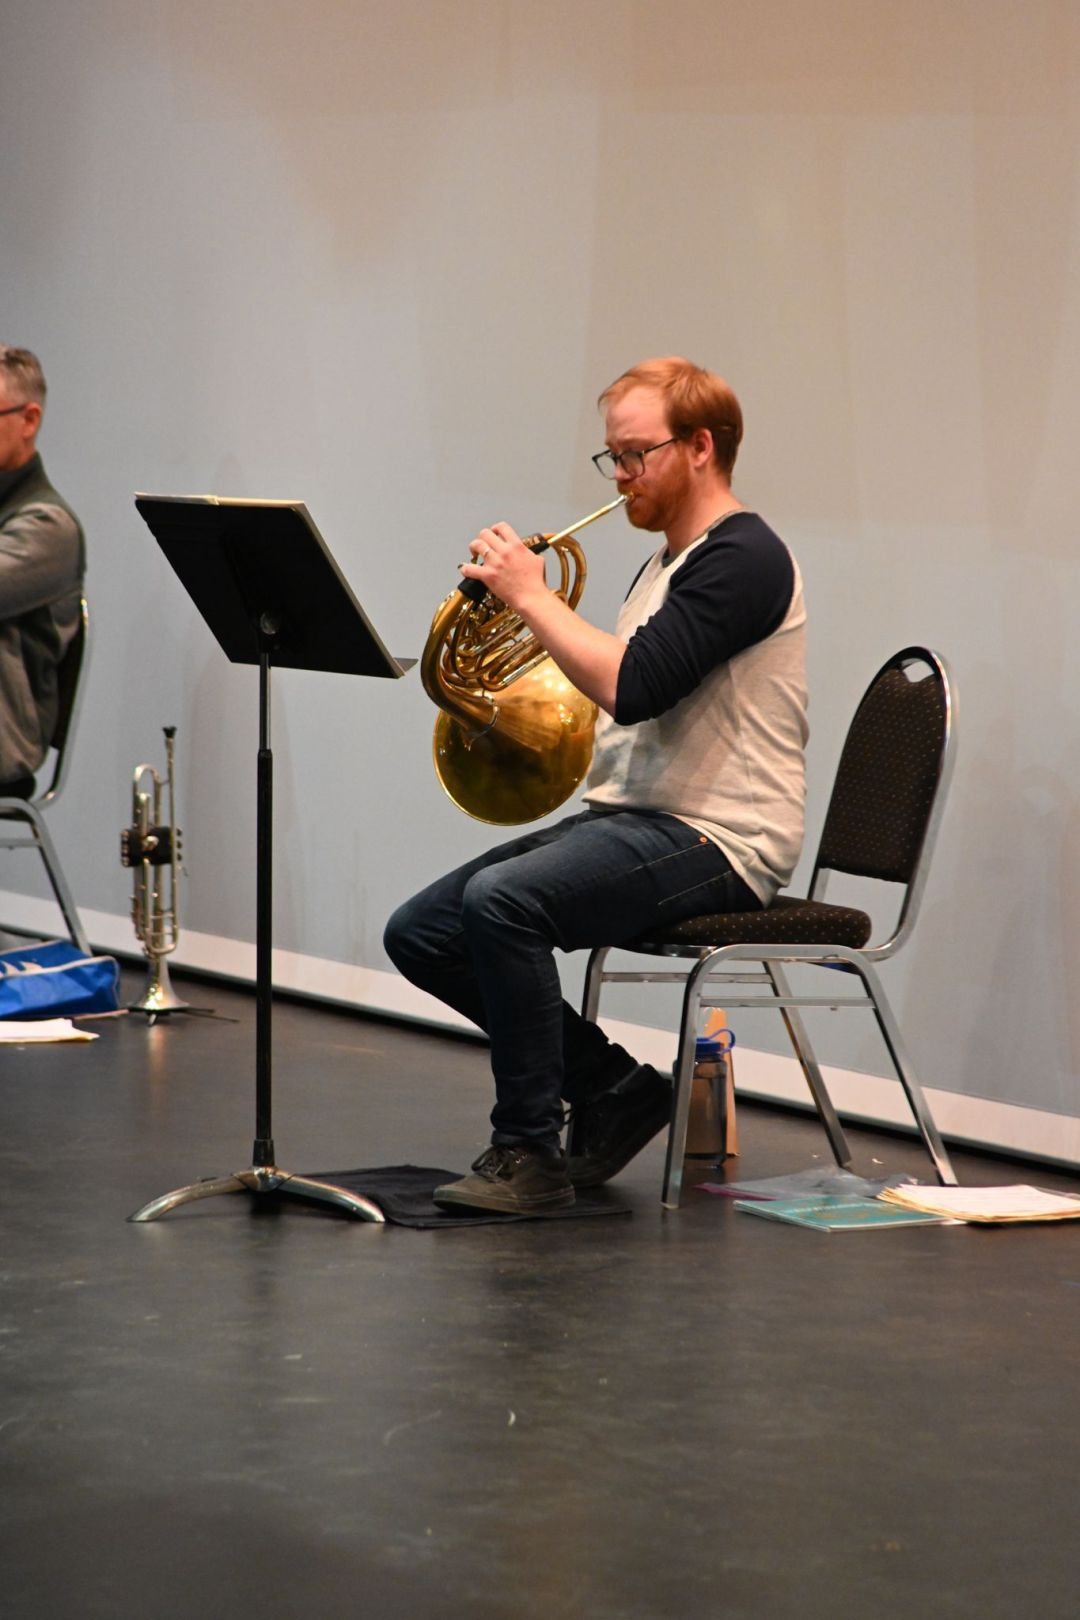 Sam McNally playing French horn in rehearsal